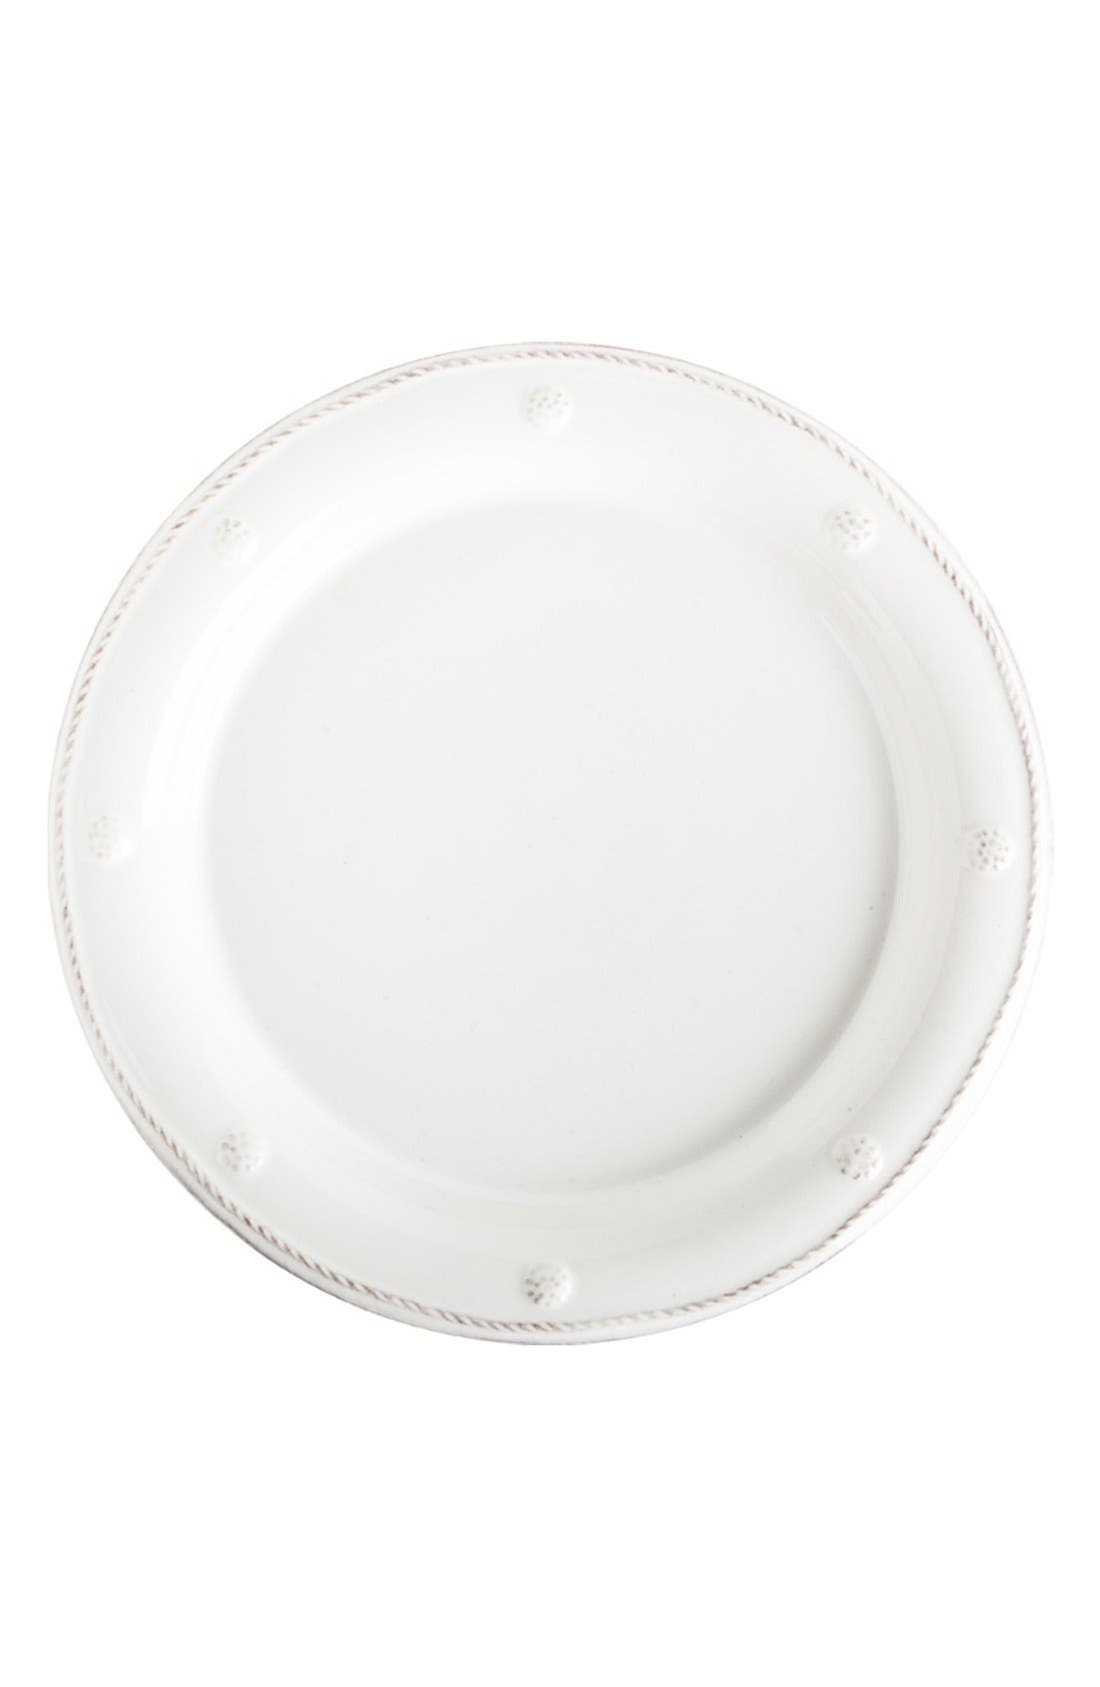 'Berry and Thread' Salad Plate,                             Main thumbnail 1, color,                             WHITEWASH